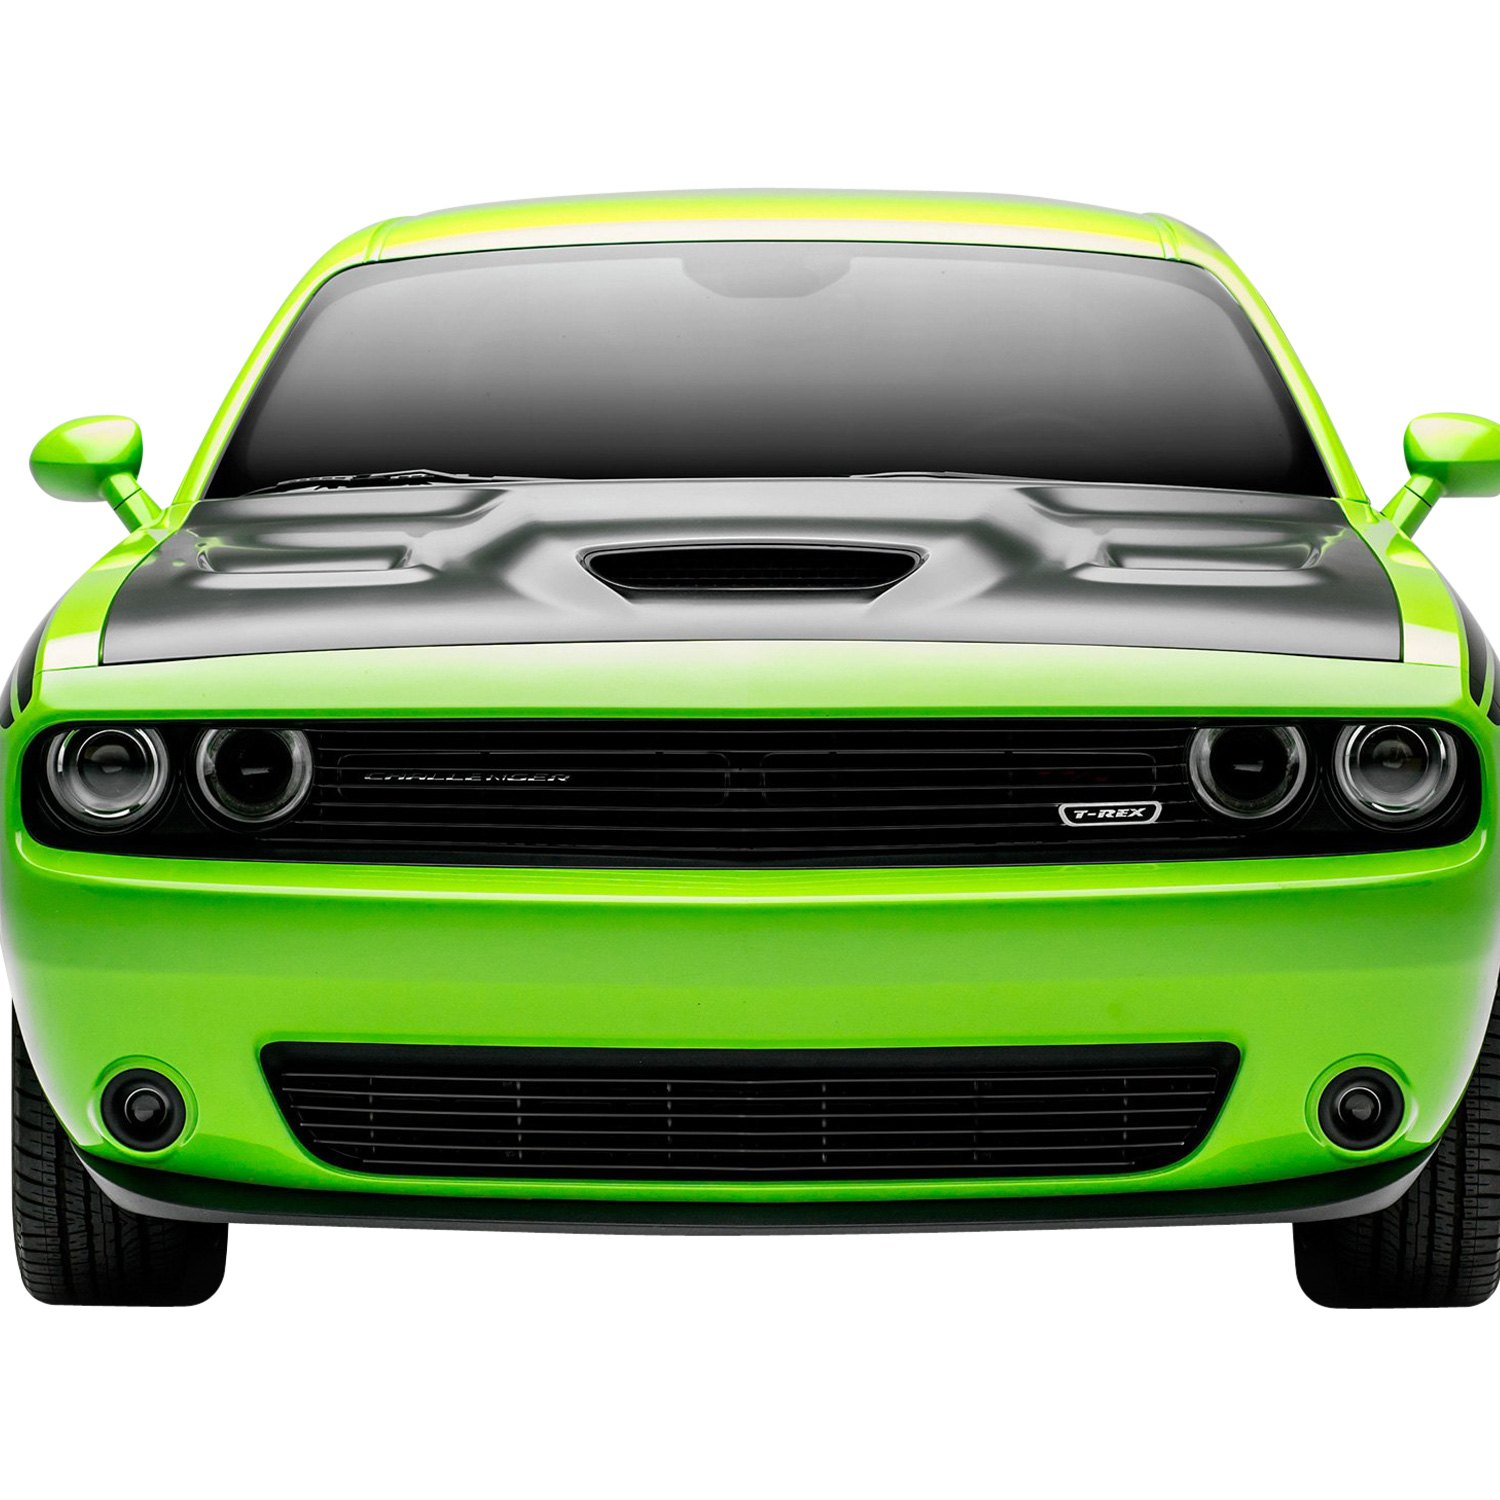 6214181-p Take A Look About Challenger Floor Mats with Terrific Pictures Cars Review